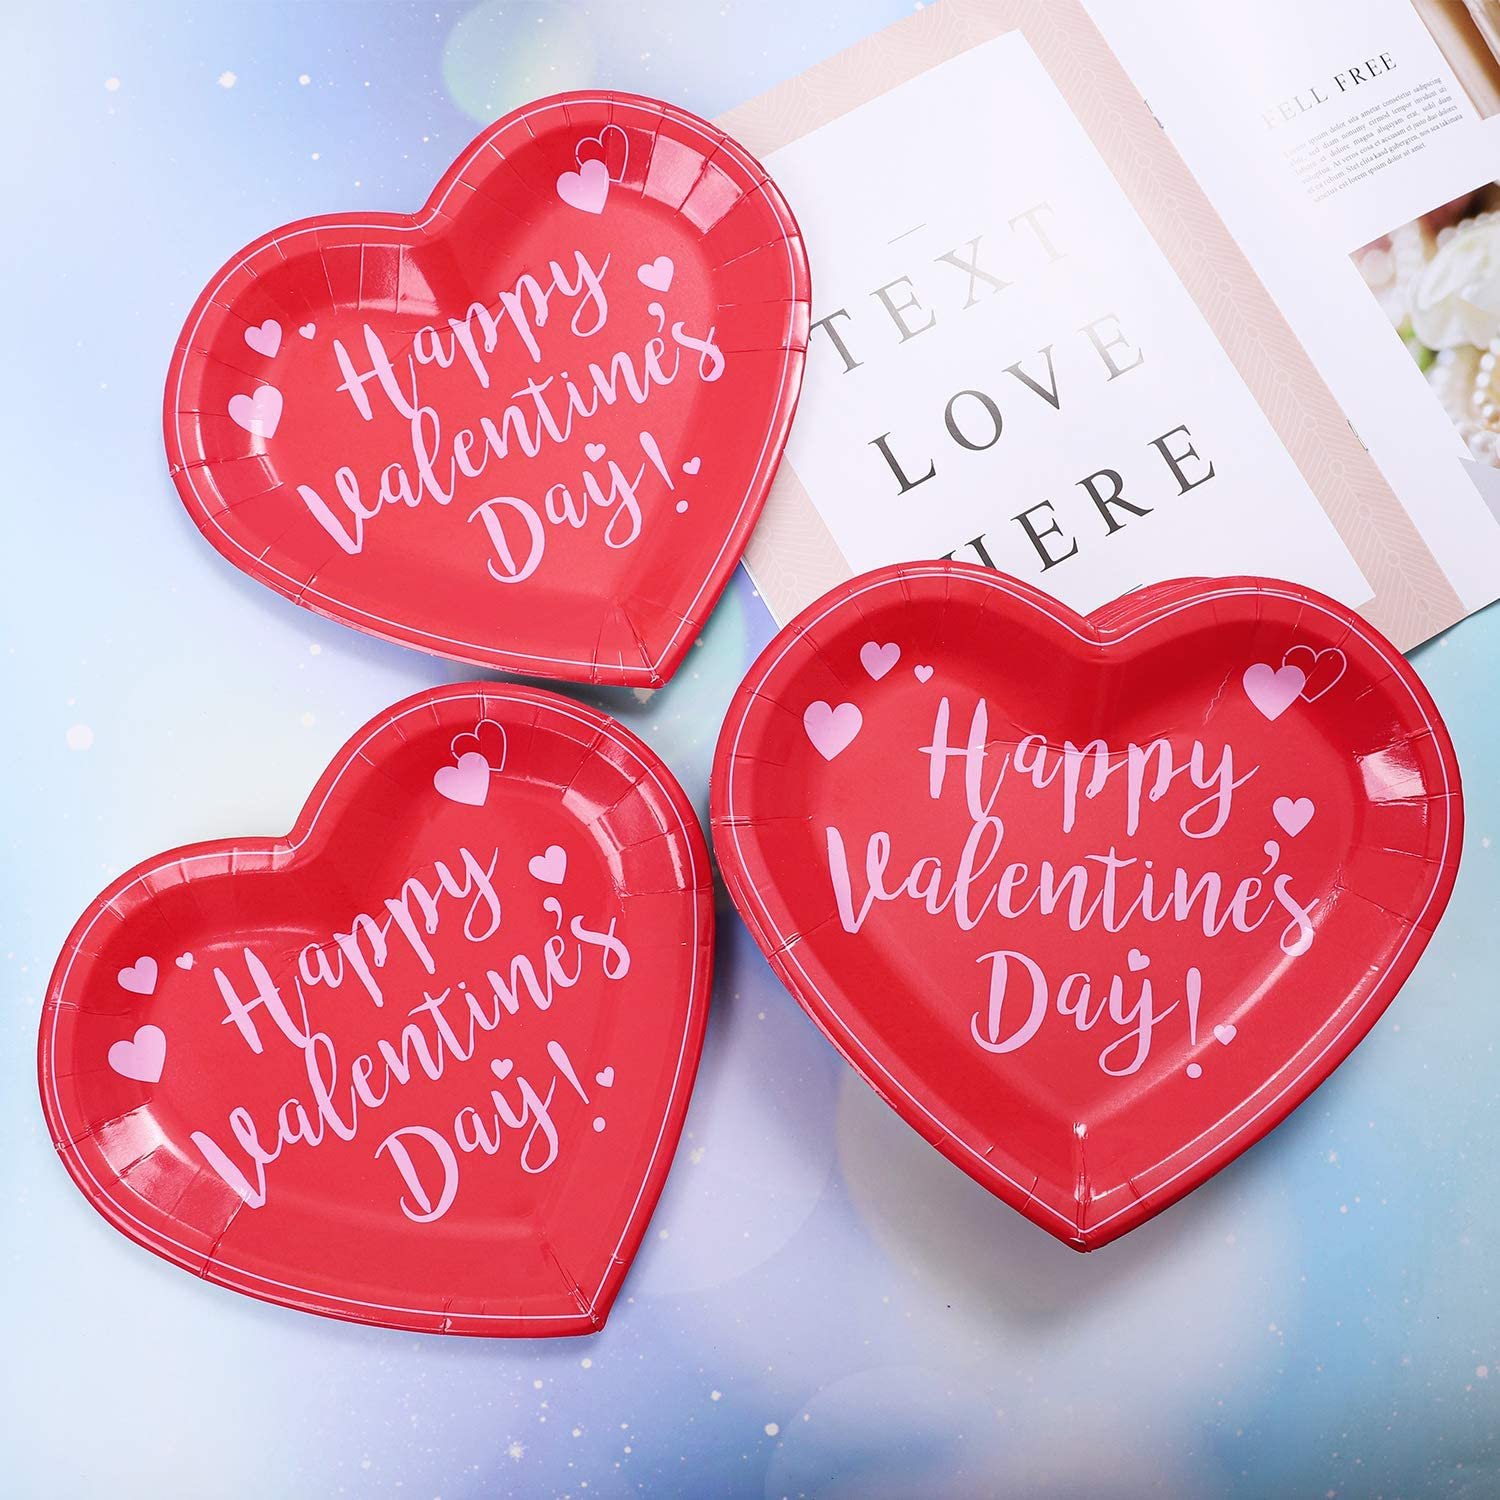 Valentine/'s Day theme confetti pack 150 or 300-pieces cardstock 25 or 50 of each image Pack A